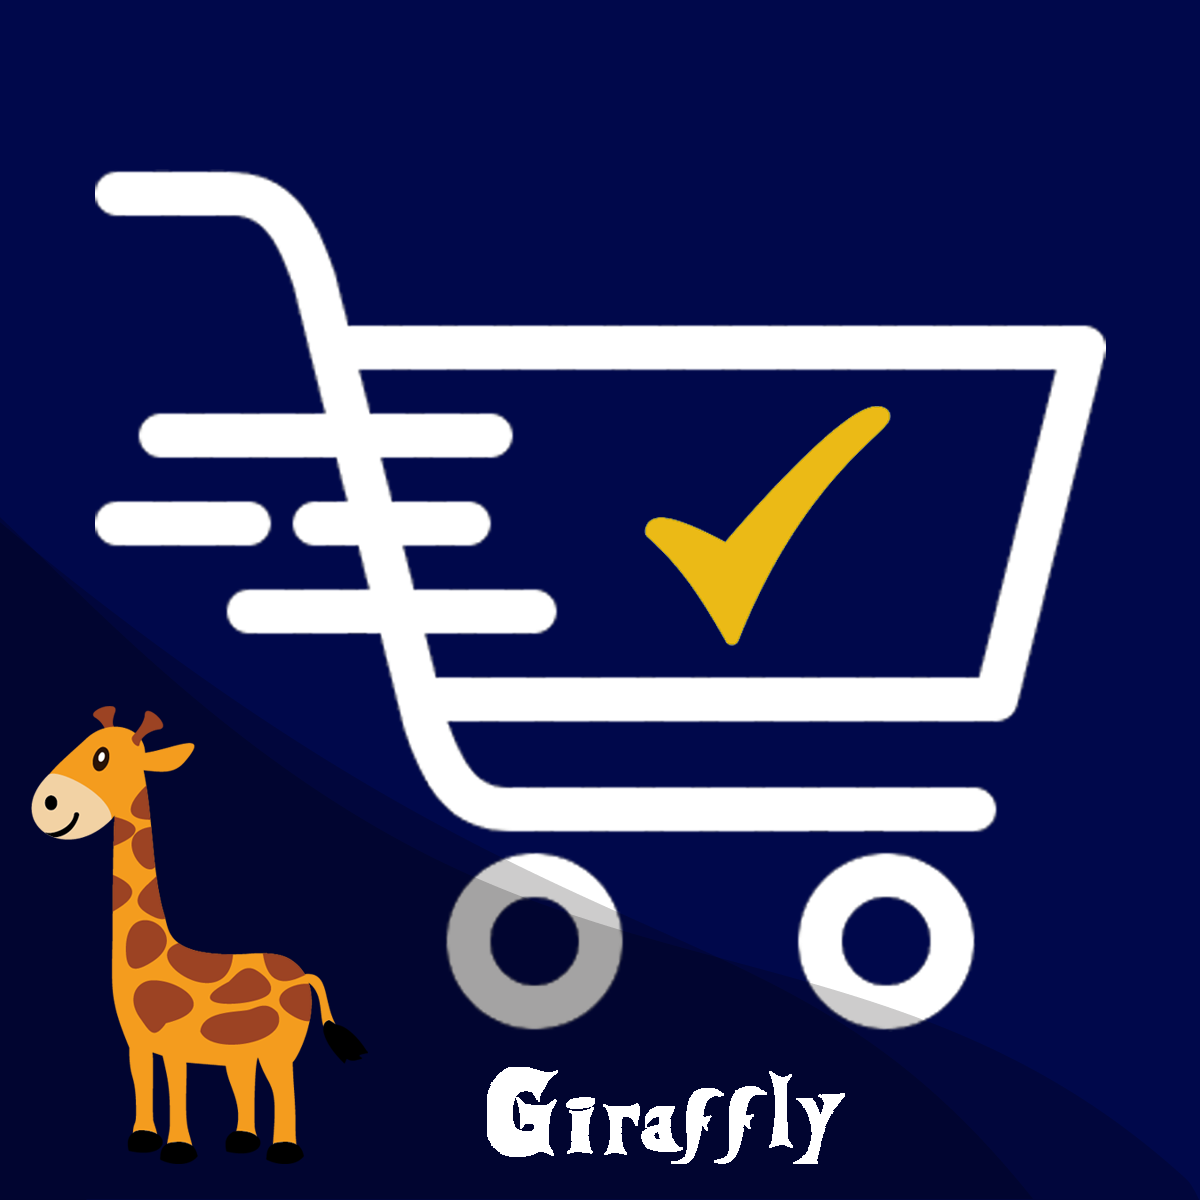 Hire Shopify Experts to integrate WebPush‑Recover Abandoned Cart app into a Shopify store